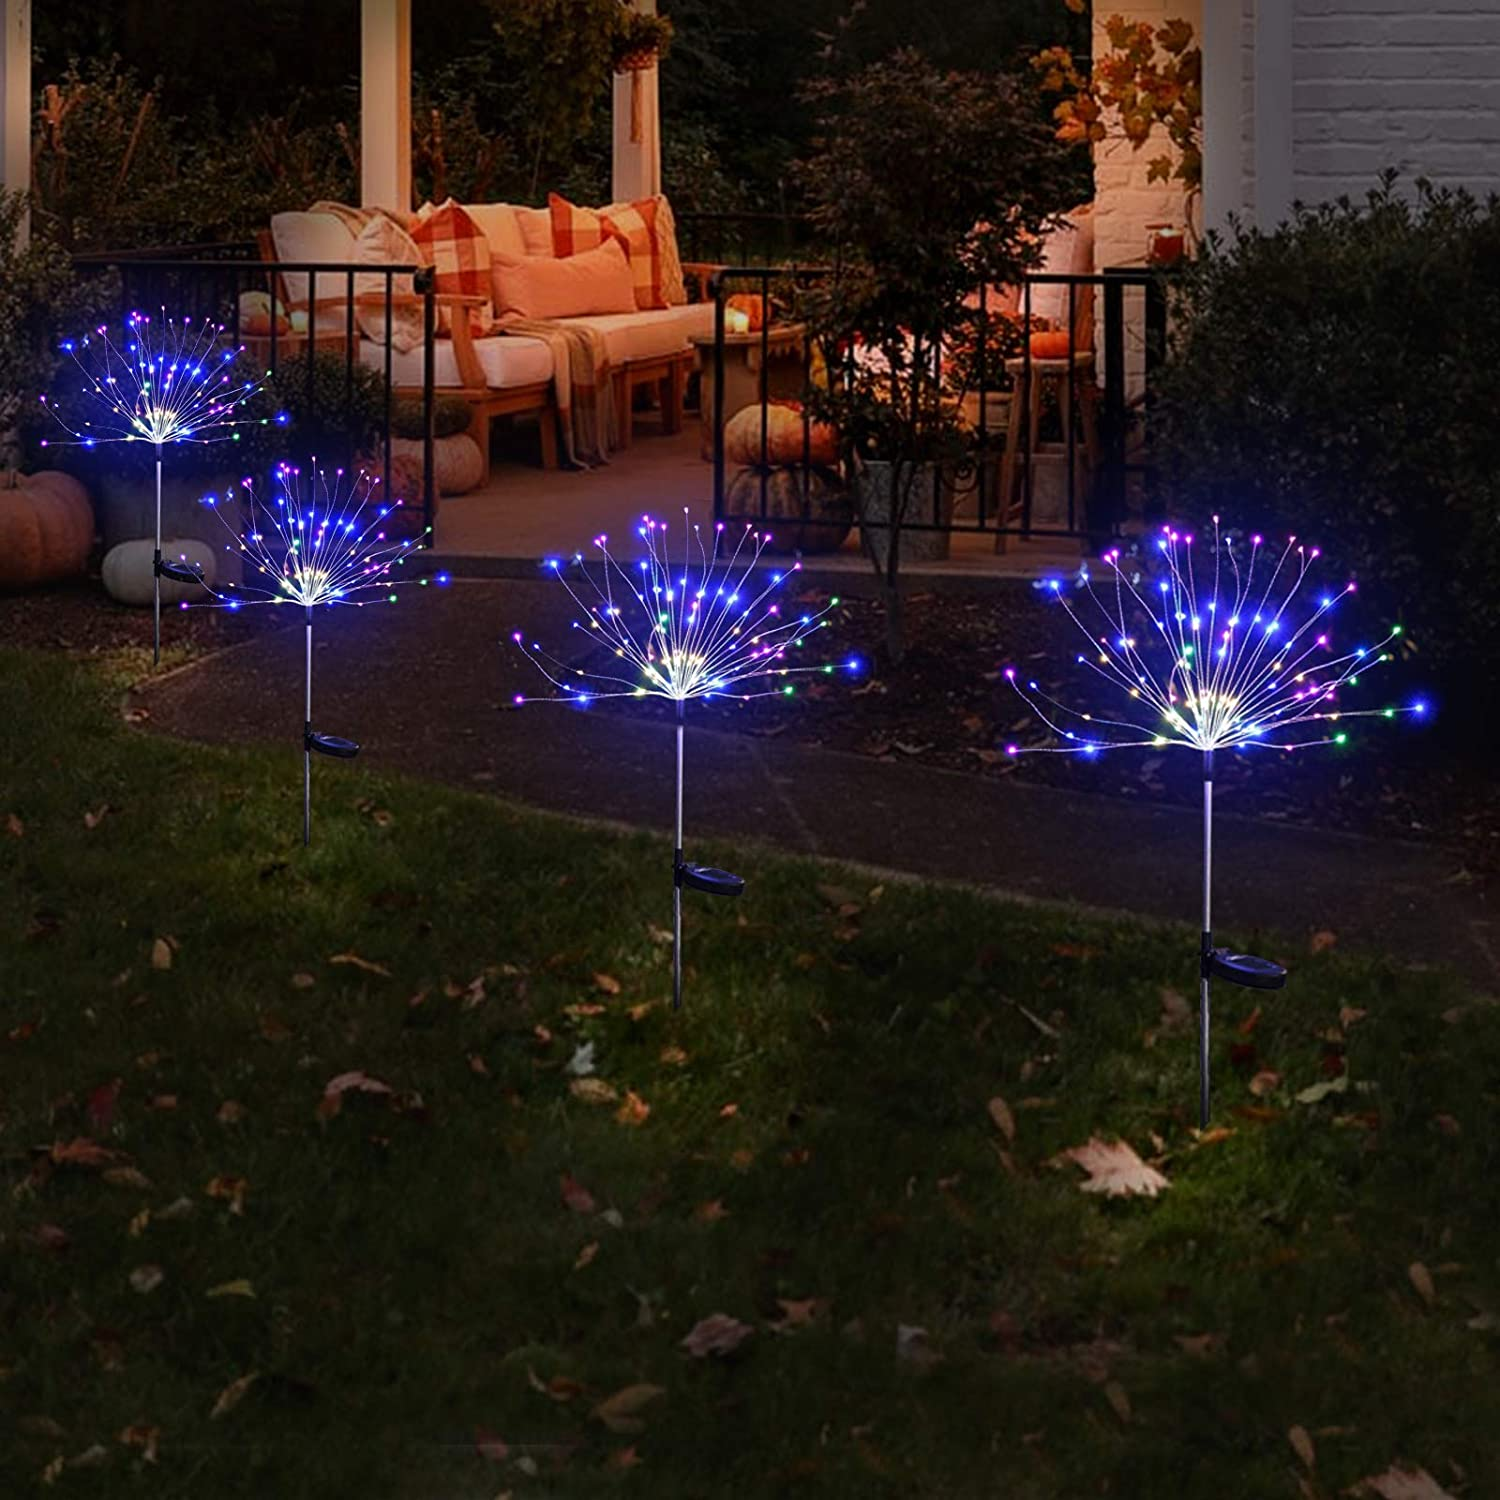 2 Pack Outdoor Home Decor Solar Powered Flowers Firework Lights, Waterproof DIY 40 Copper Wire Dimmable Multicolor Auto ON-Off 150 LED Lights for Garden Patio Yard Pathway Lawn Party